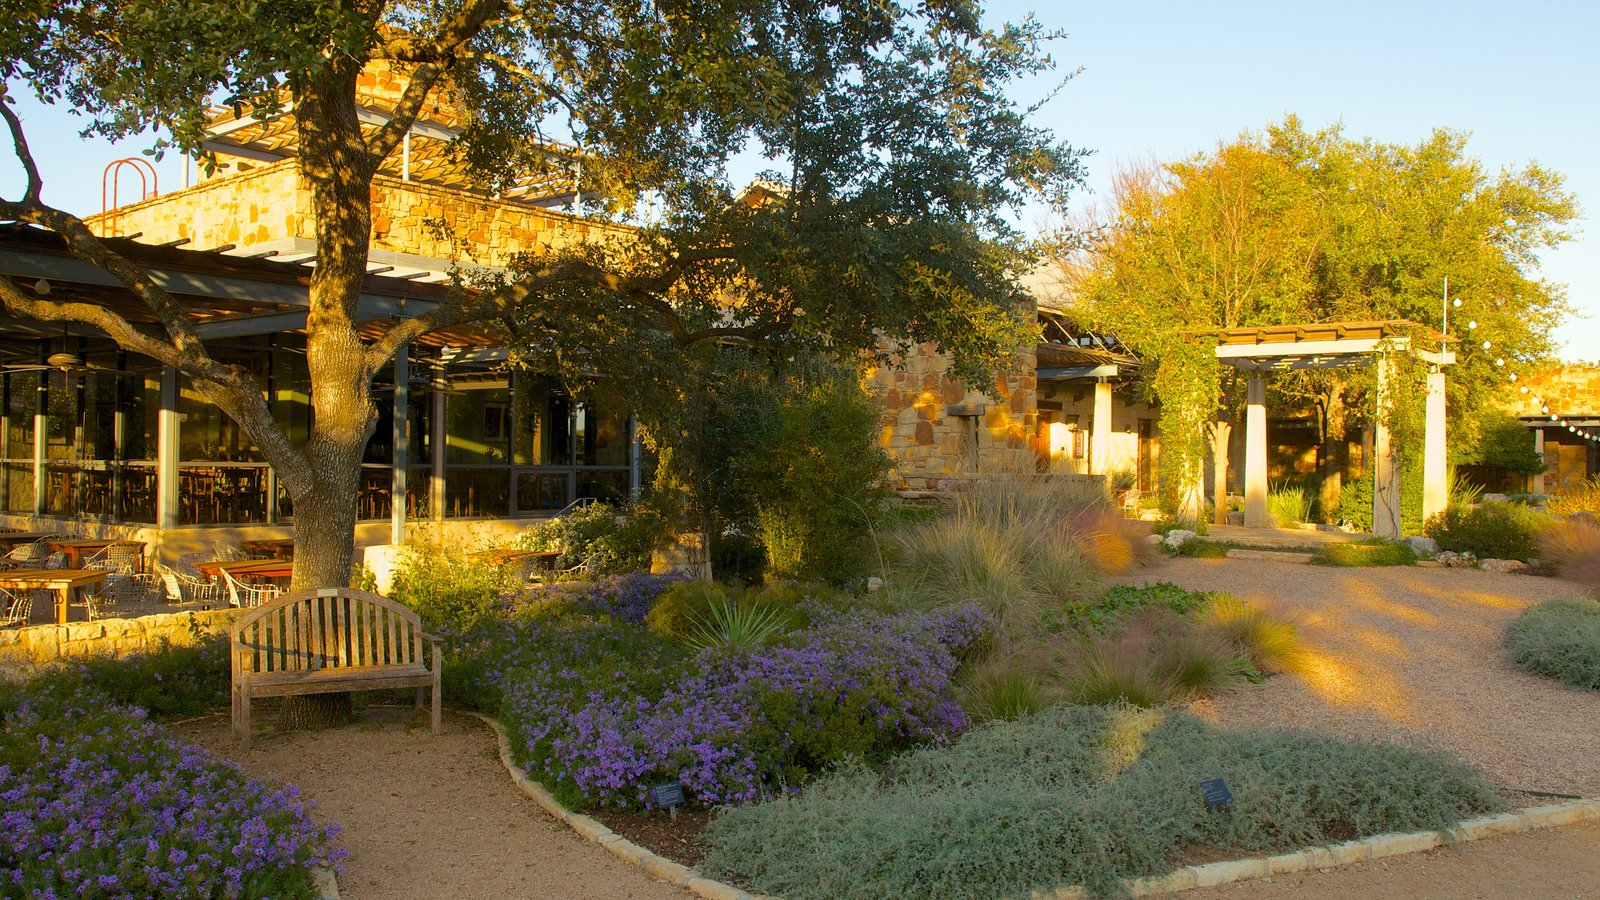 Lady Bird Johnson Wildflower Center Pictures: View Photos & Images ...